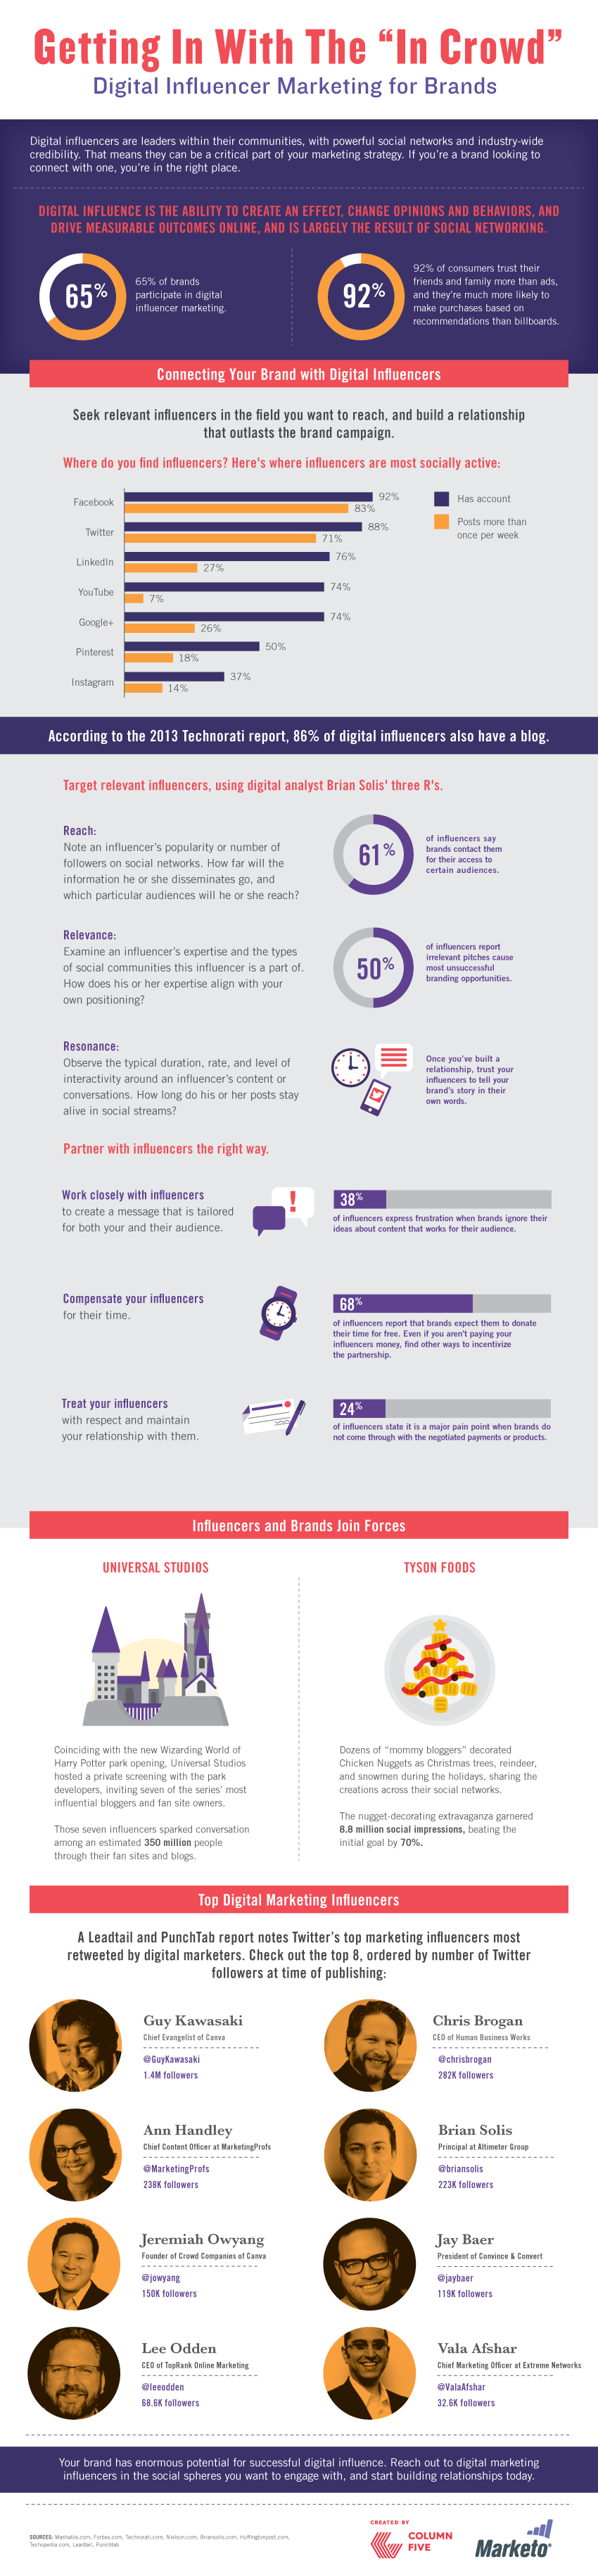 in-crowd-digital-influencer-marketing-for-brands-infographic (1)